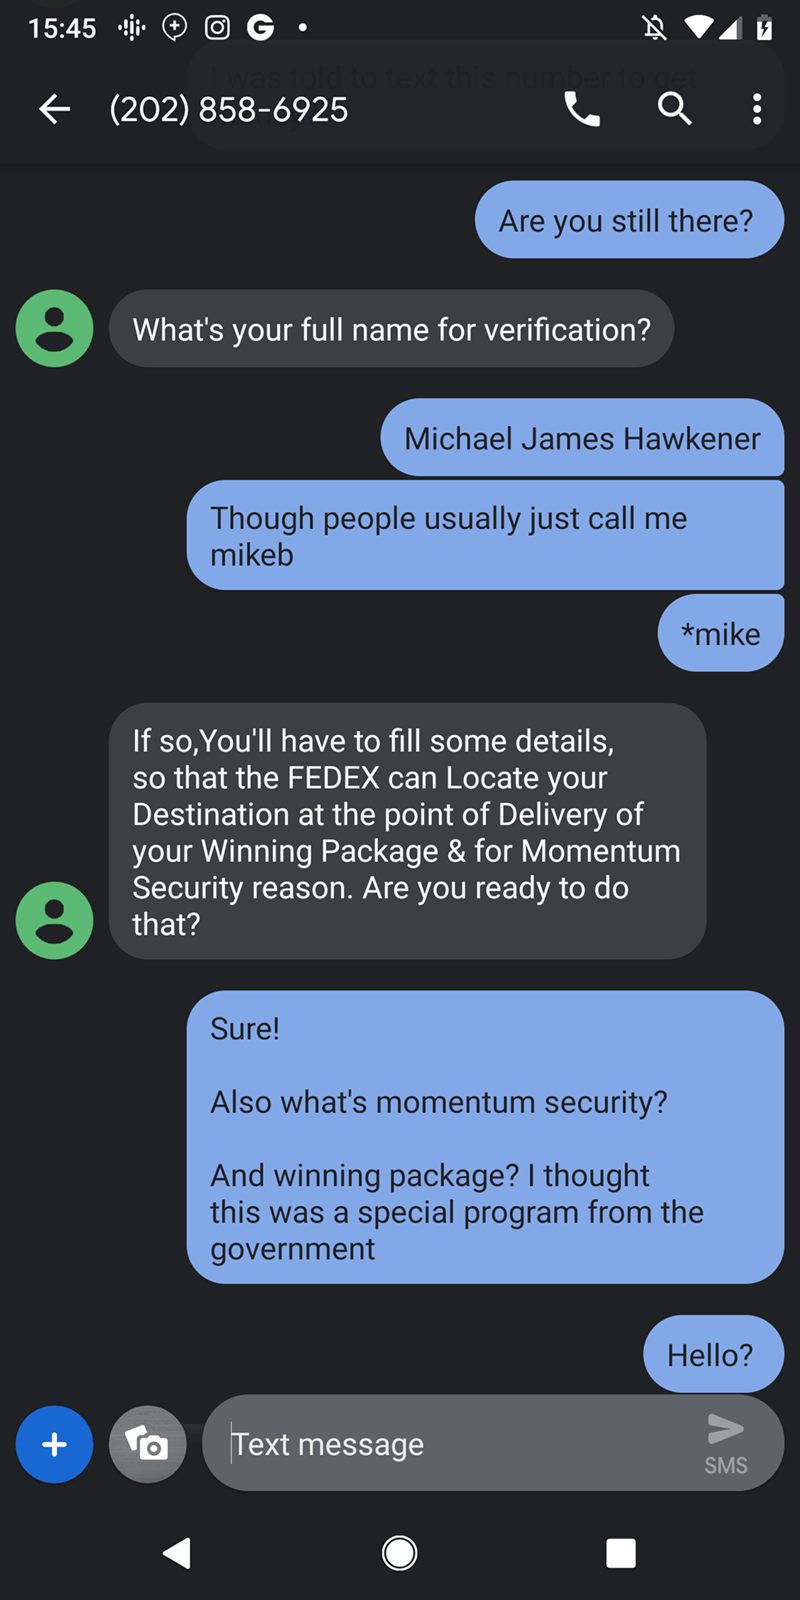 trolling - Text - 15:45 to text this num (202) 858-6925 Are you still there? What's your full name for verification? Michael James Hawkener Though people usually just call me mikeb *mike If so,You'll have to fill some details, so that the FEDEX can Locate your Destination at the point of Delivery of your Winning Package & for Momentum Security reason. Are you ready to do that? Sure! Also what's momentum security? And winning package? I thought this was a special program from the government Hello